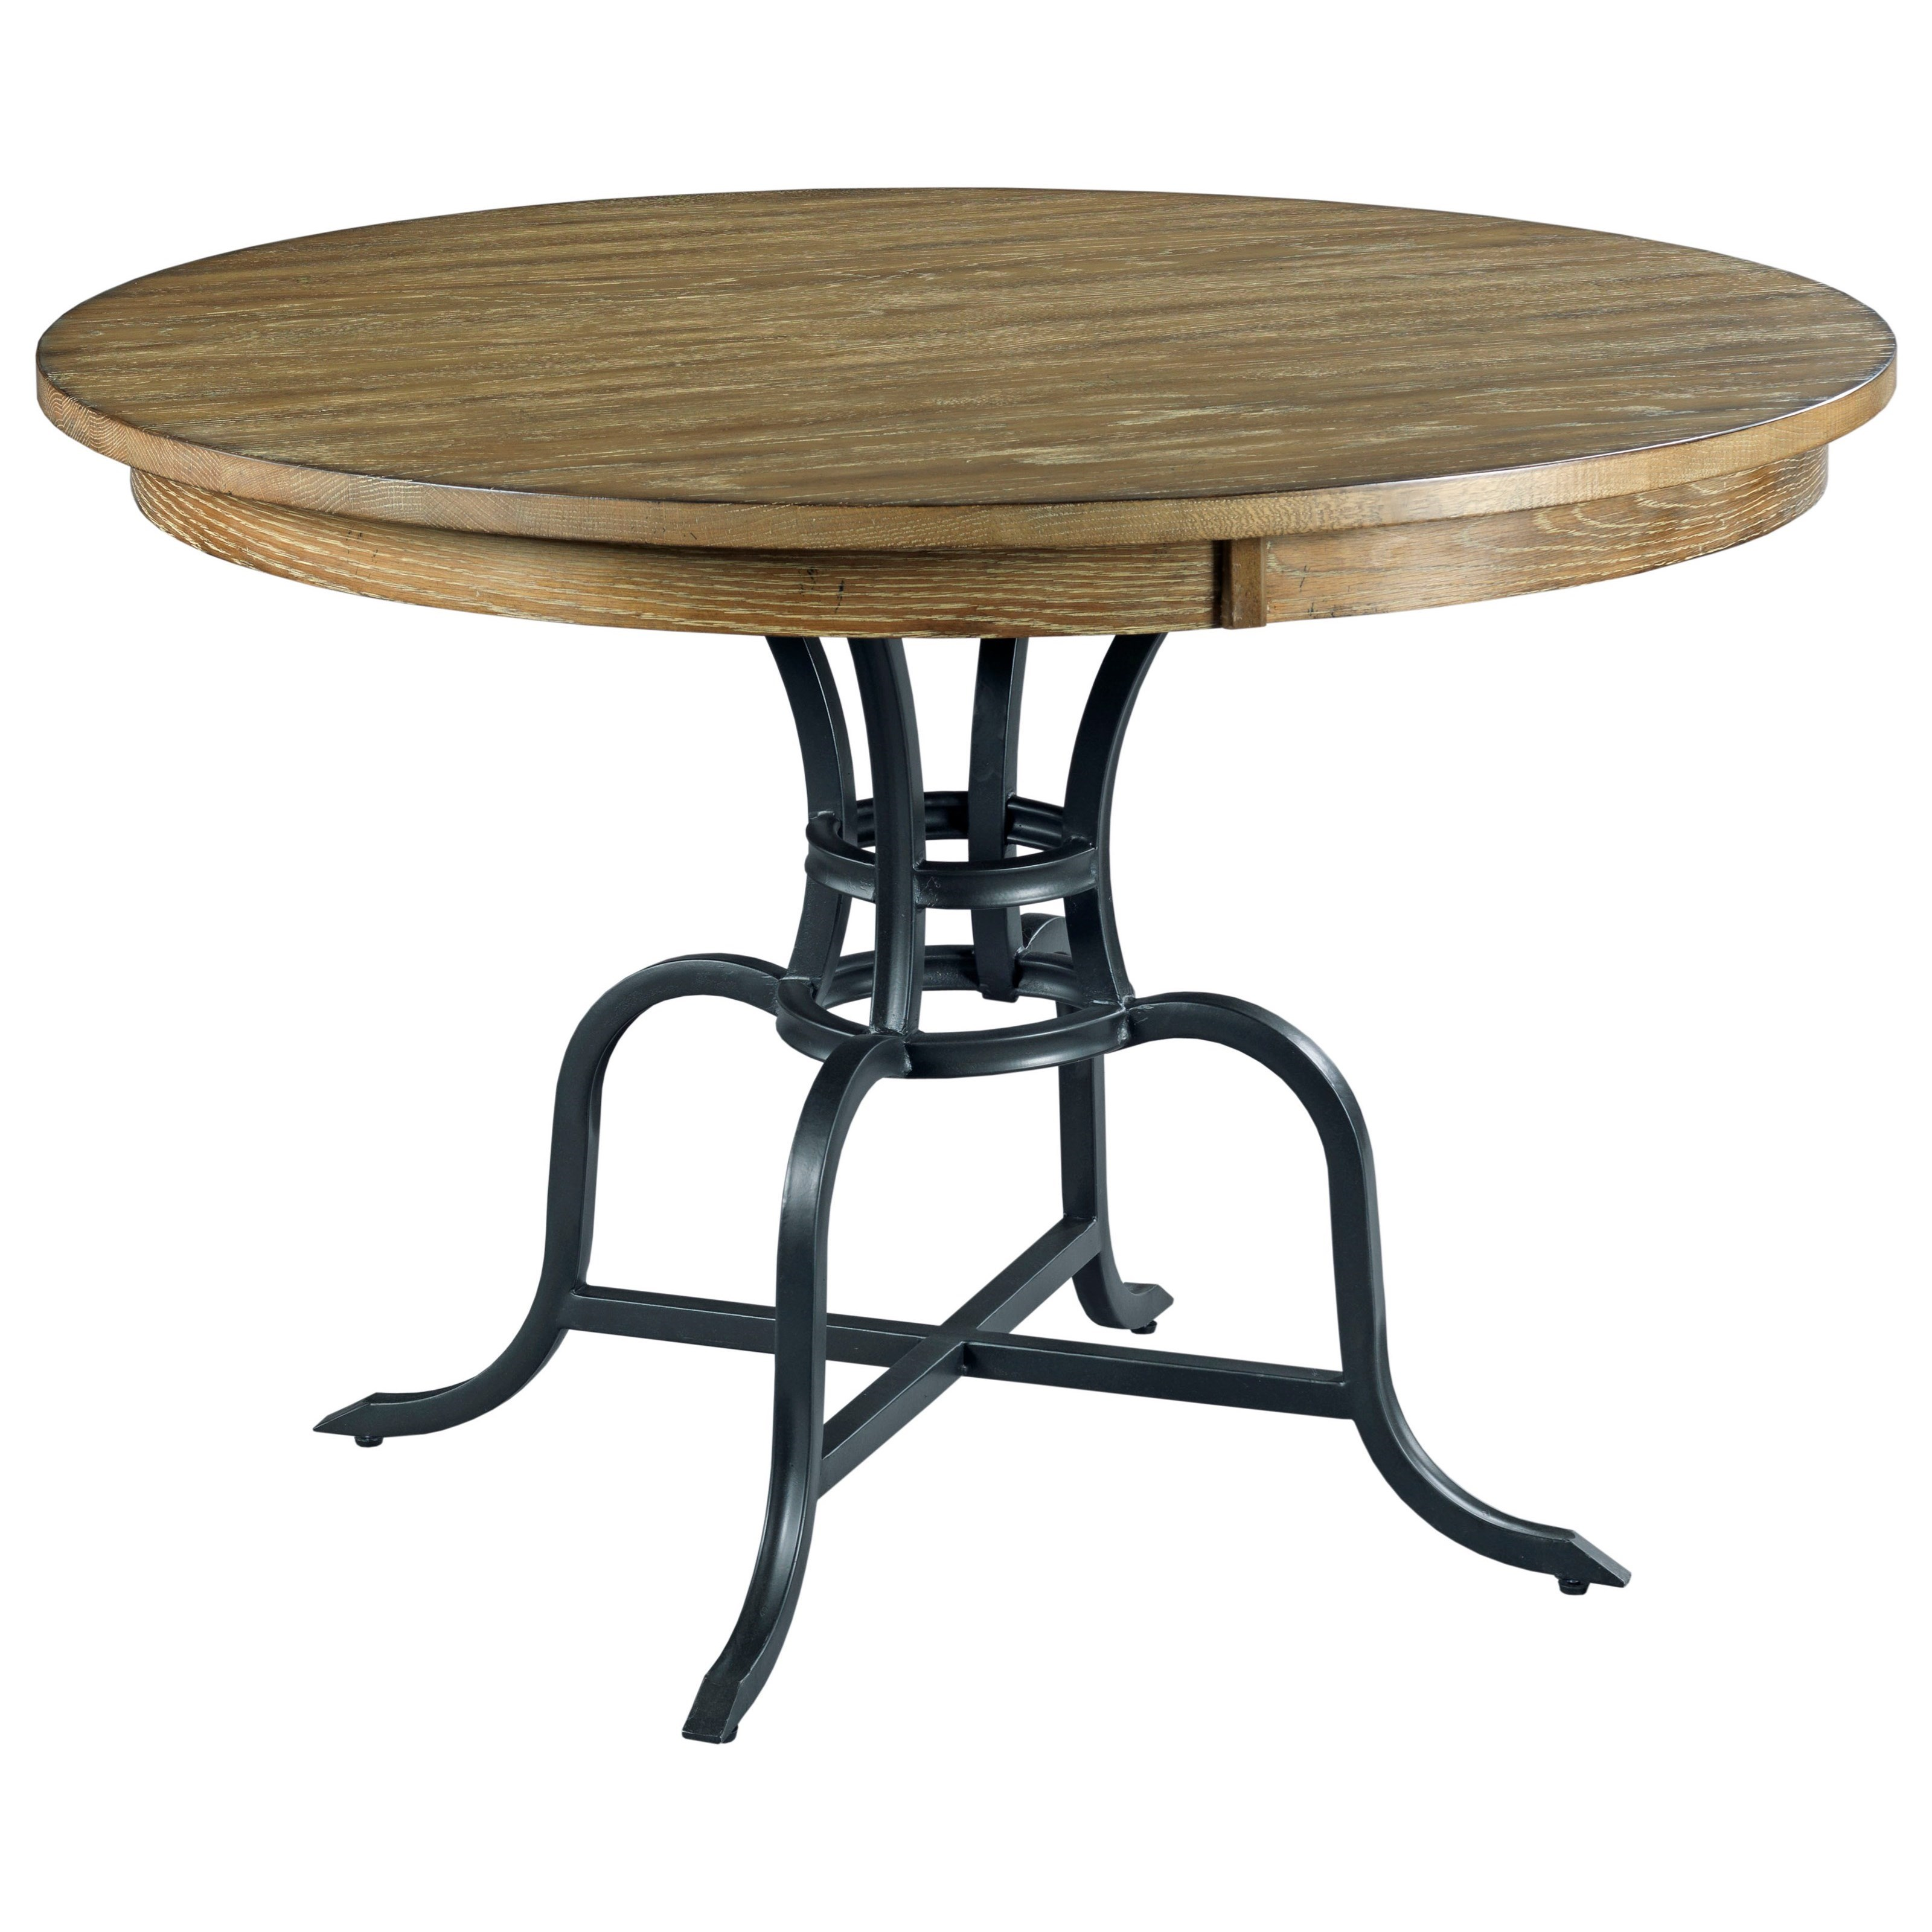 44 round solid wood dining table with rustic metal base by kincaid furniture wolf and. Black Bedroom Furniture Sets. Home Design Ideas